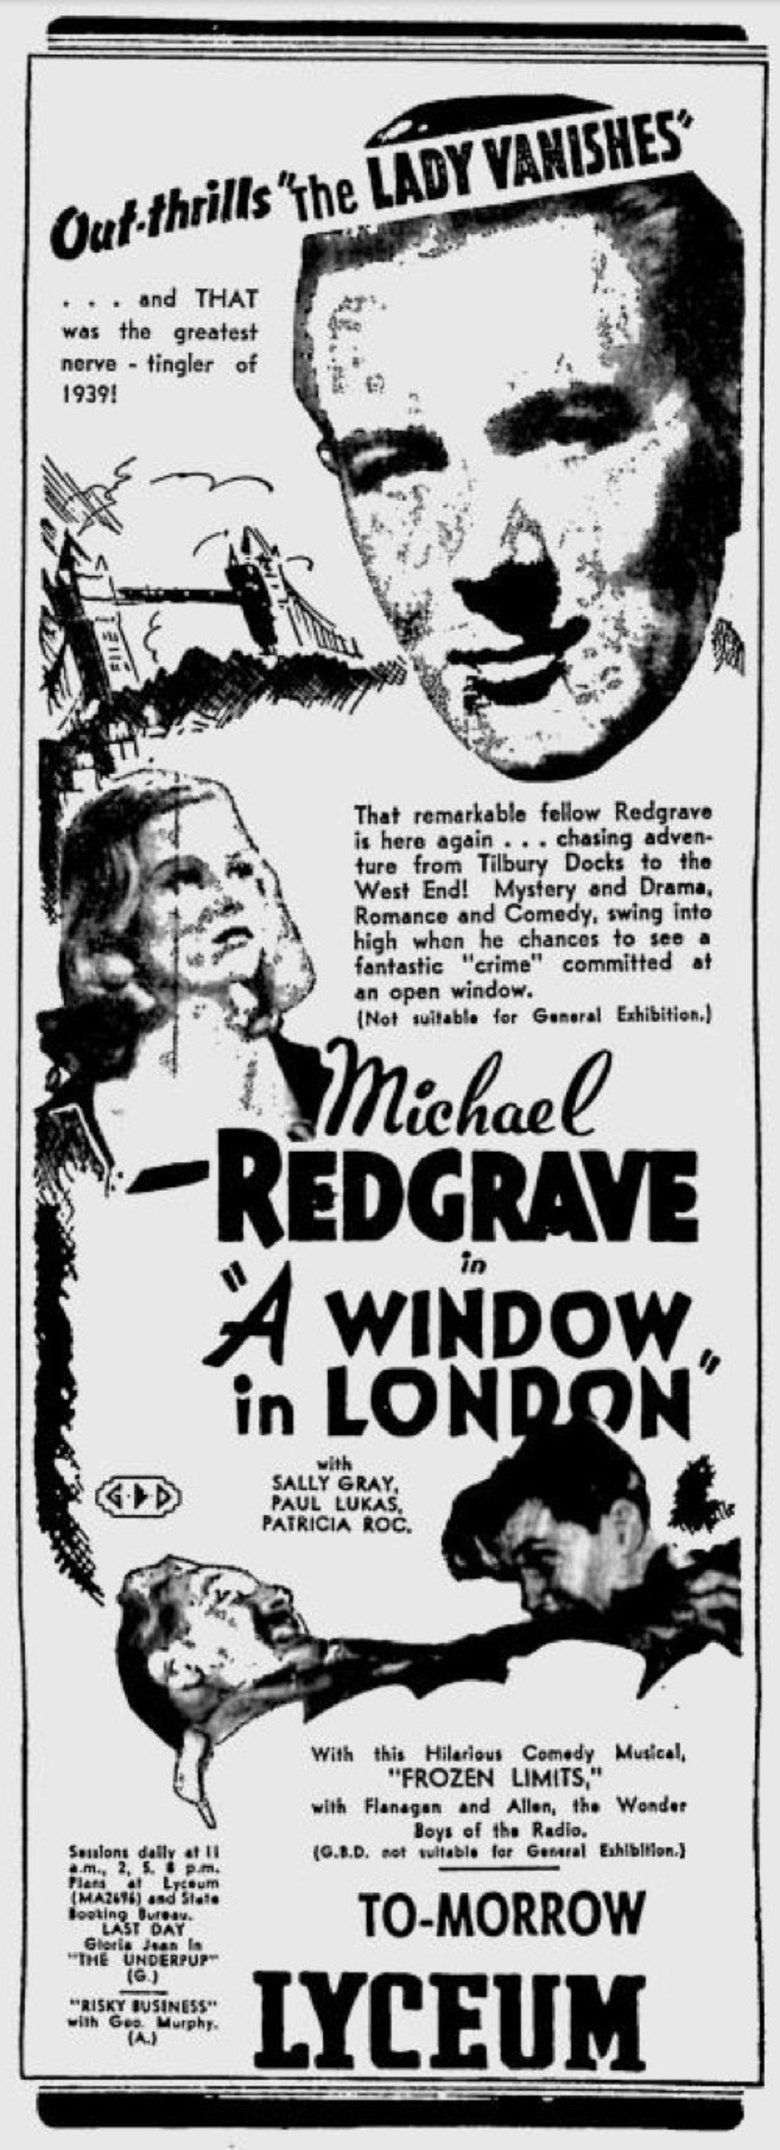 A Window in London movie poster